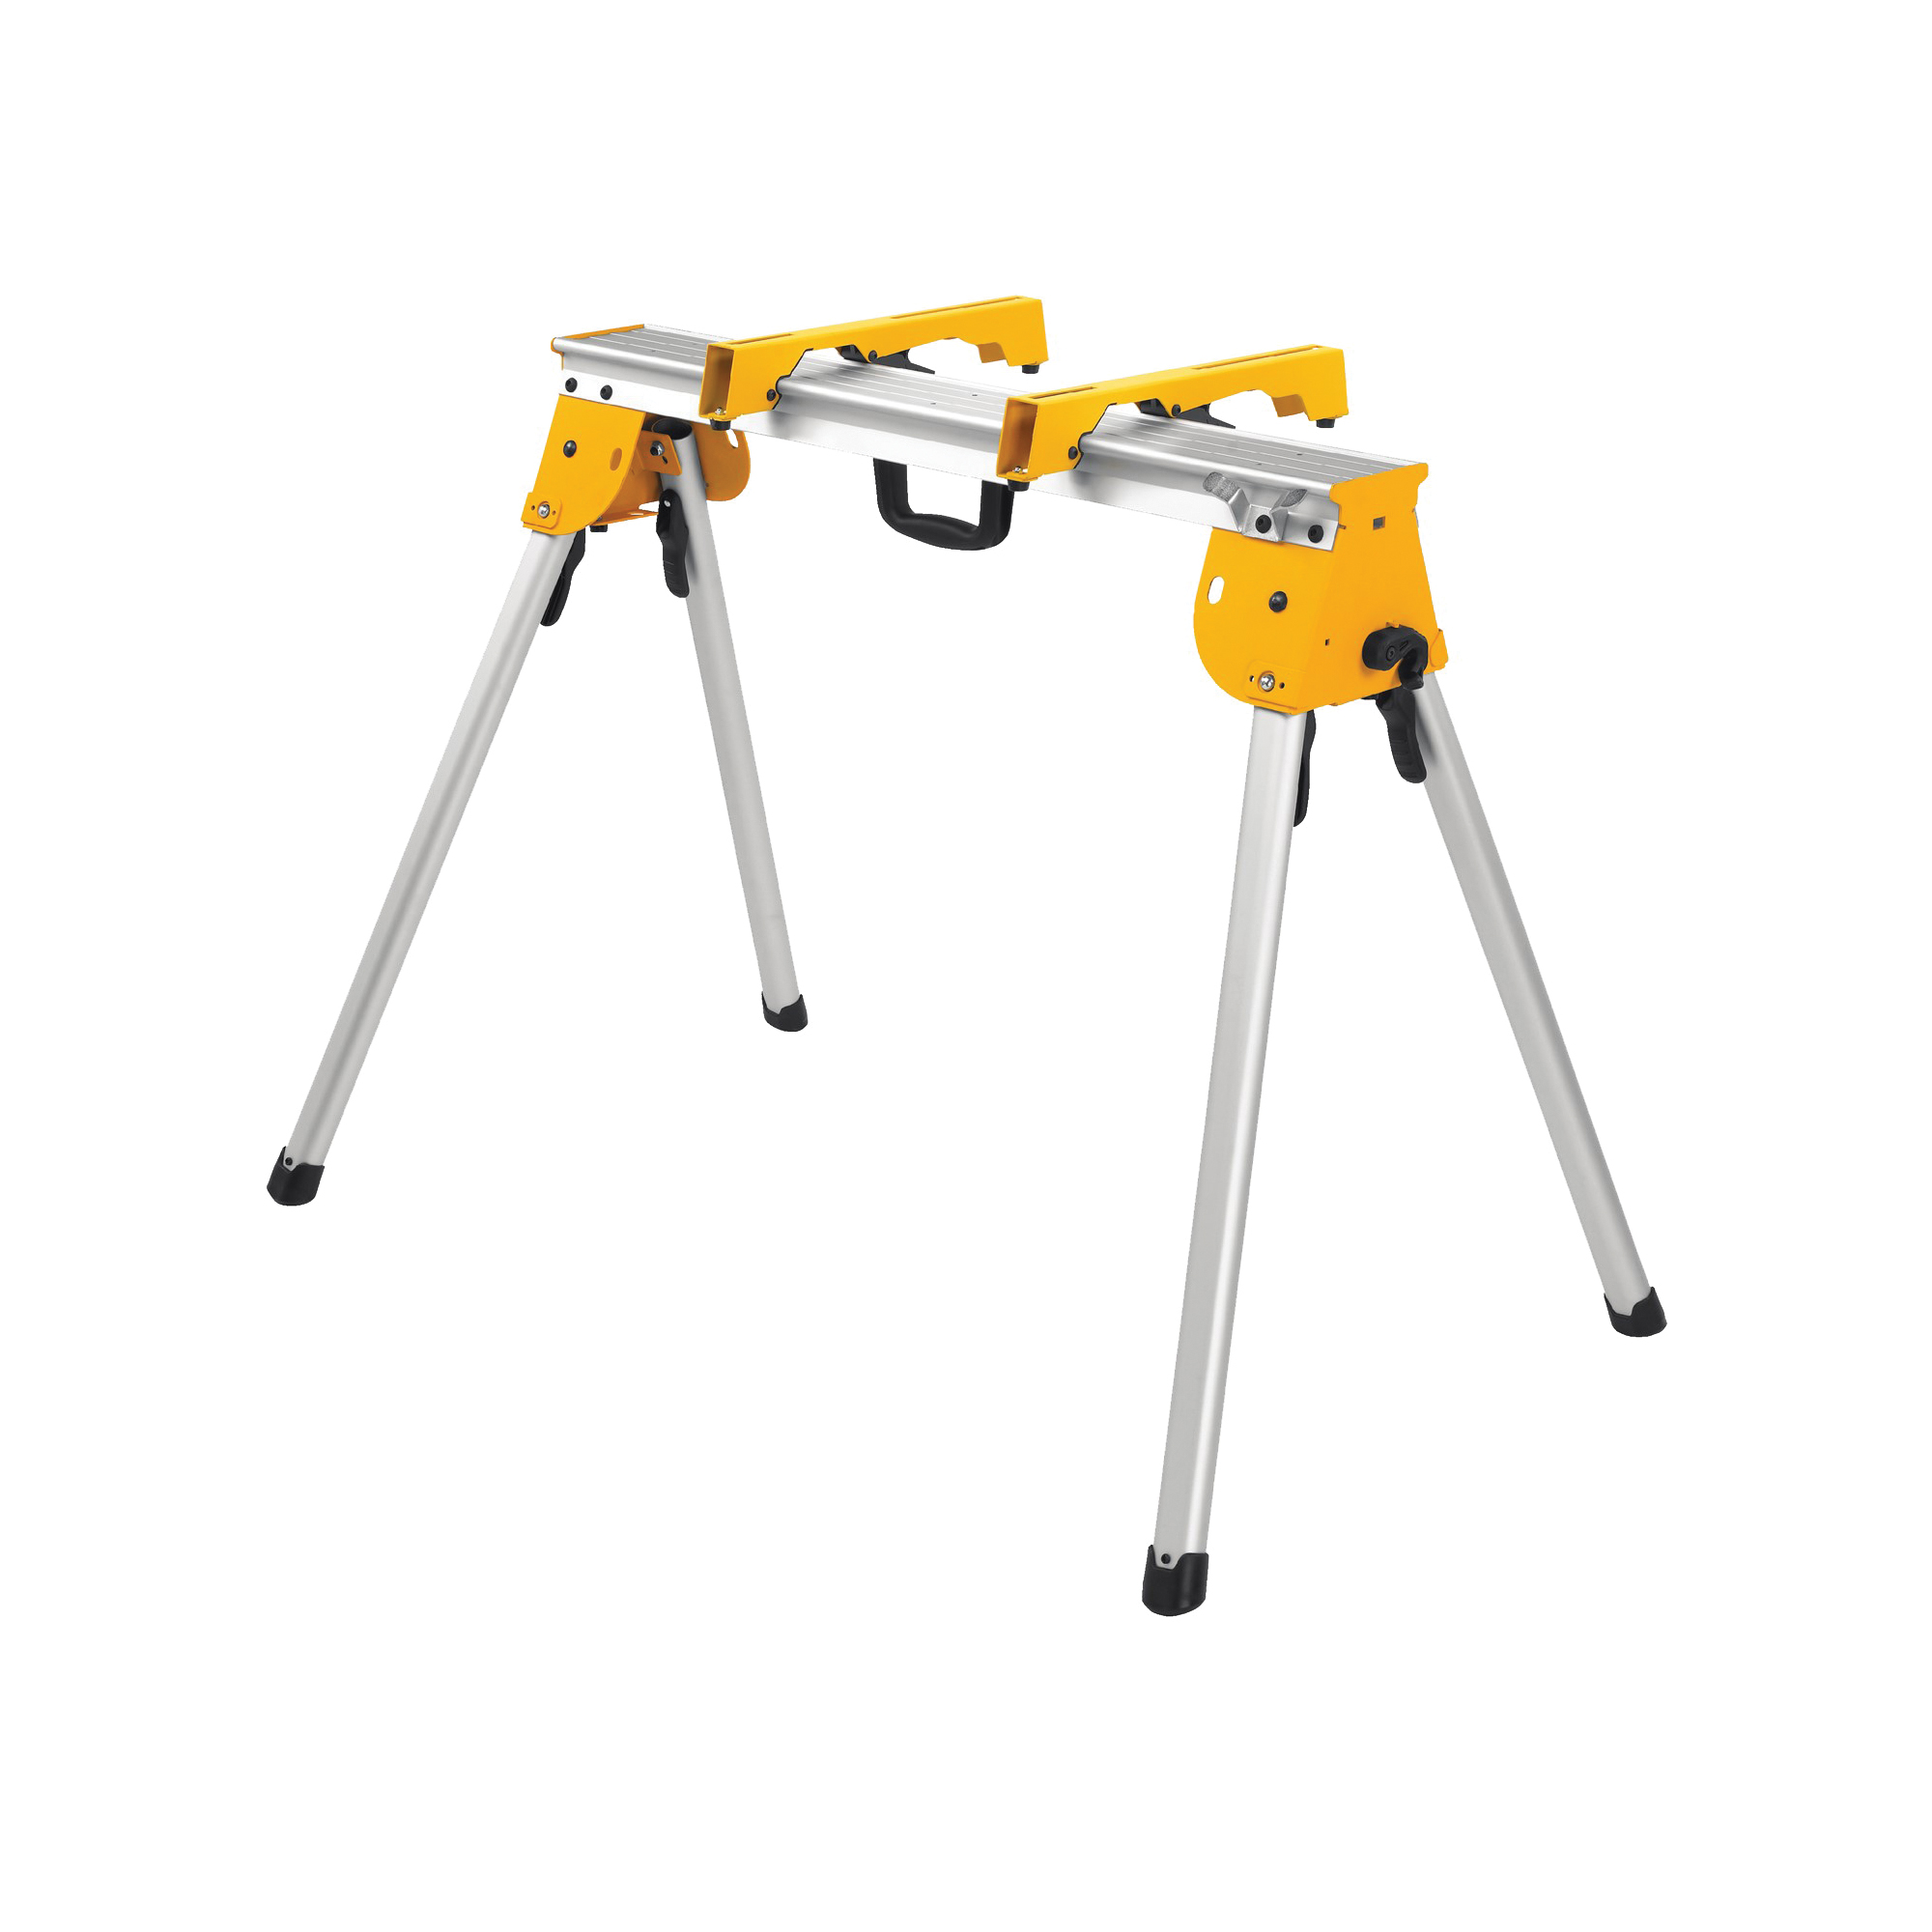 Picture of DeWALT DWX725B Work Stand with Miter Saw Mounting Bracket, 1000 lb, 36 in W Stand, 32 in H Stand, Aluminum